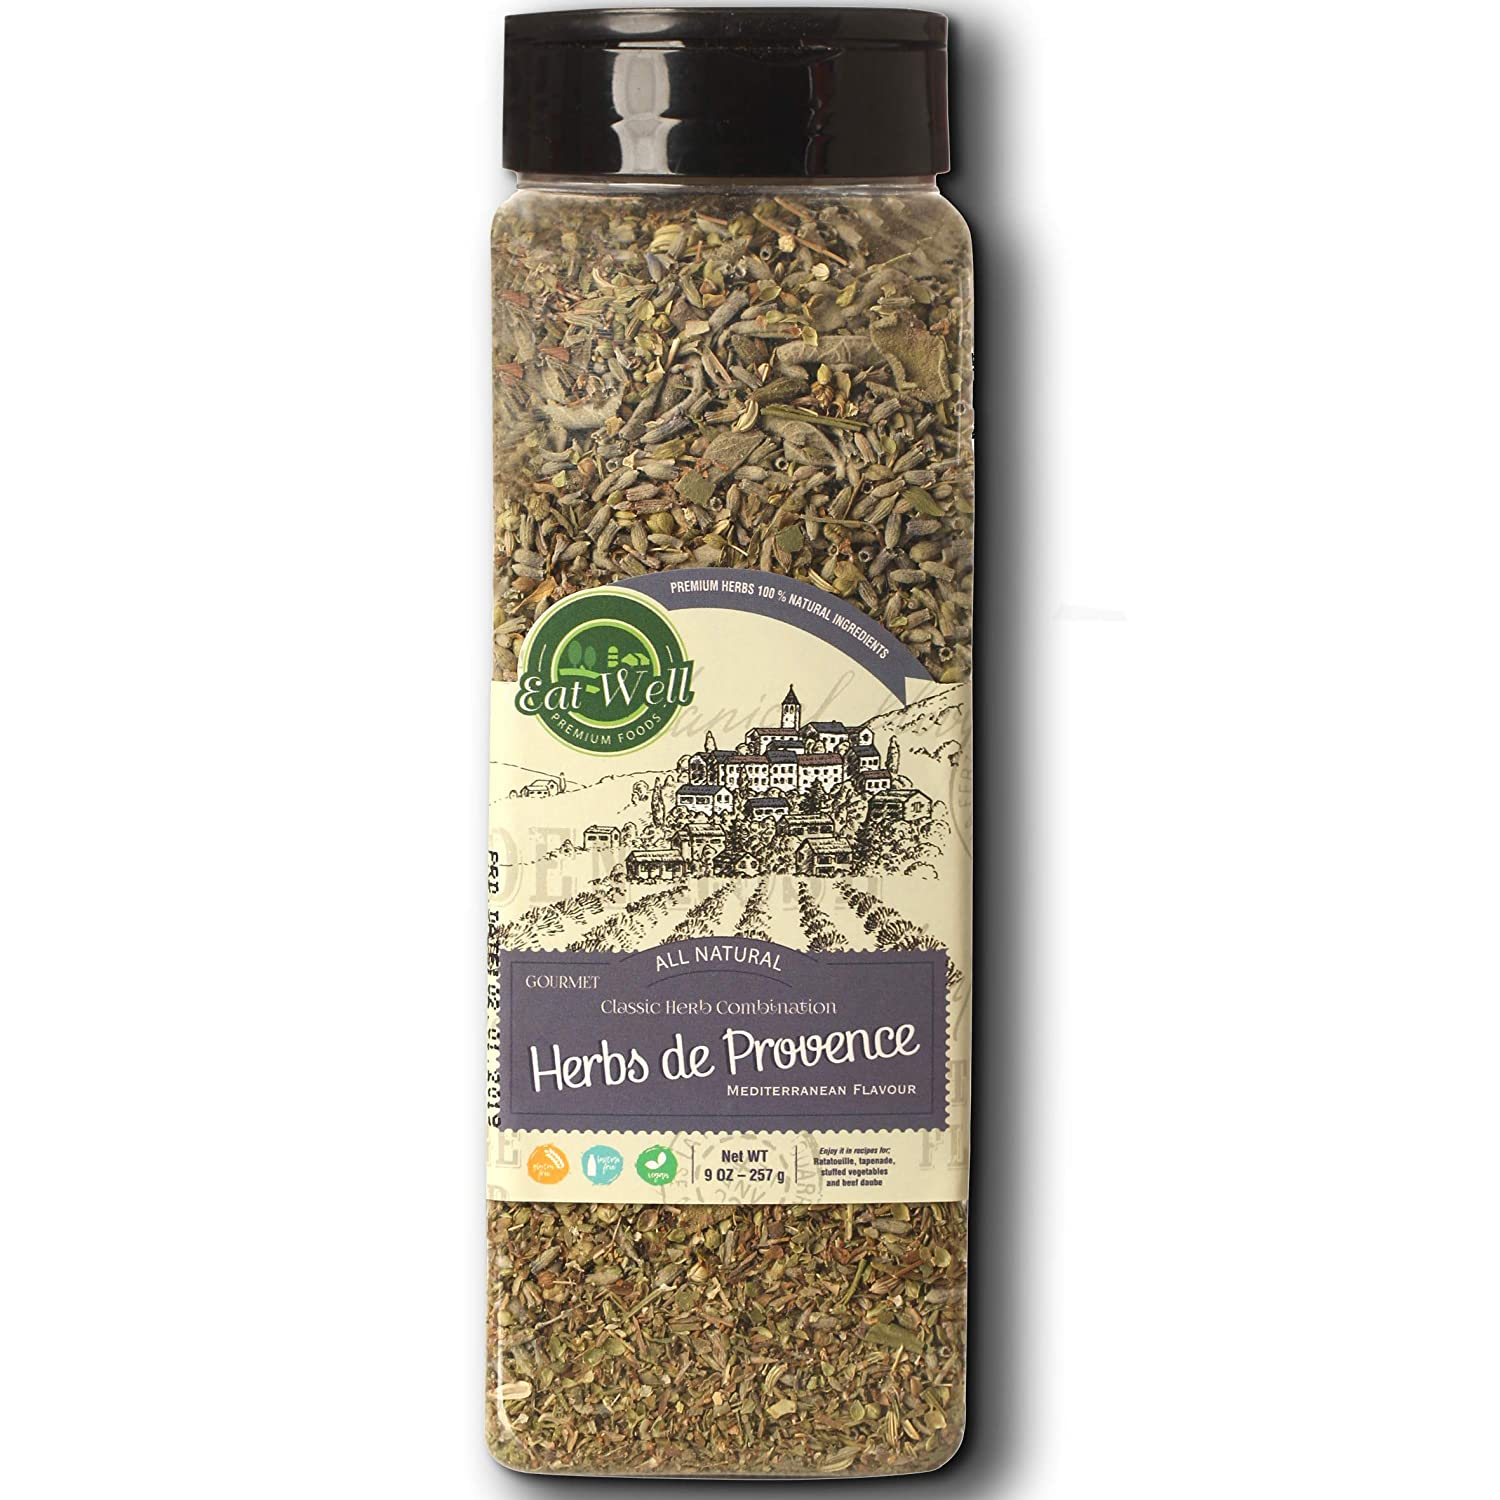 Eat Well Premium Foods - Herbs De Provence Seasoning 9 Ounce - 255 Gr Bulk Spice Quart Jar with Shaker Top, Seasoning - Spice Blend with Lavender, 100% Natural Blend